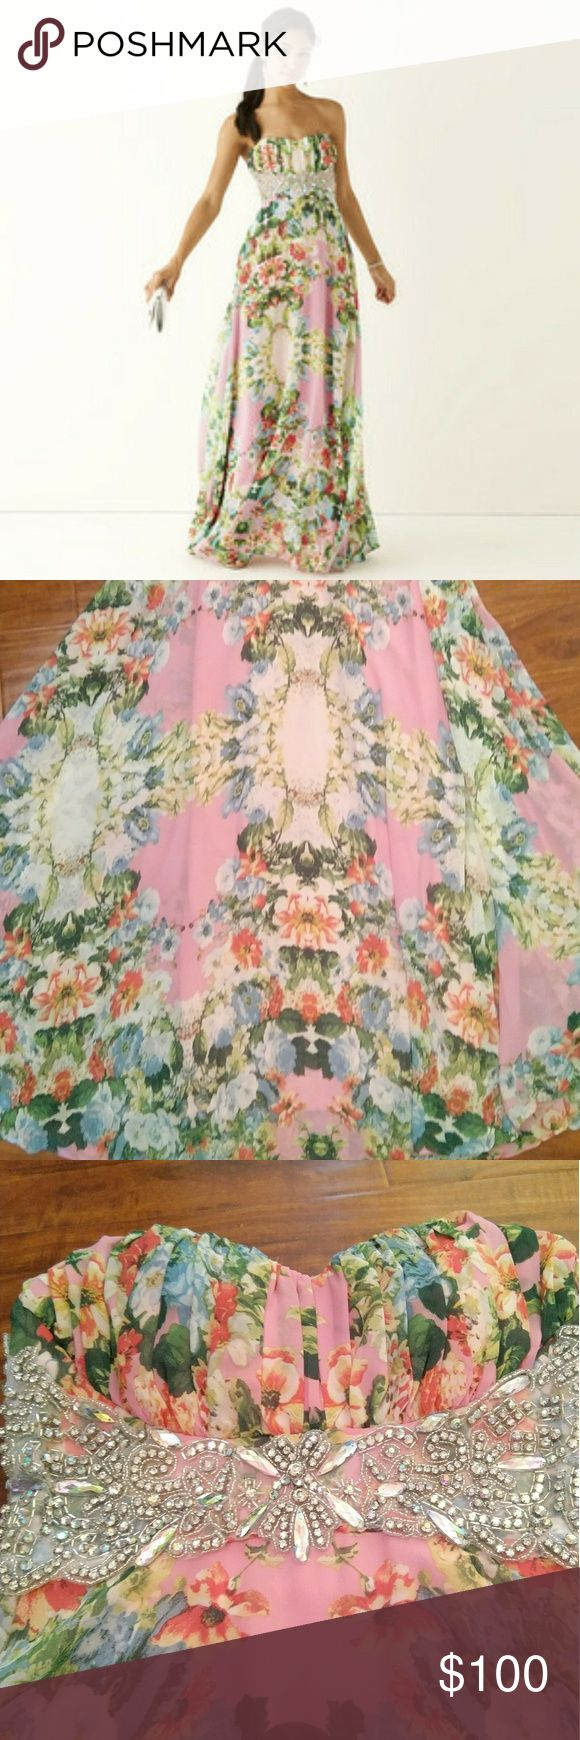 Strapless Pink/Blue Floral Elegant Prom Dress City Triangles Brand Strapless Embellished Waist Floral Print Prom Long Slim Dress  Juniors size small (1)  Very nice formal dress, however, I am 5'2.5 (yes that .5 is necessary :P) and the dress is rather long on me. Worn only once  Originally priced at $170  Feel free to send me an offer or ask any questions  Tags: homecoming prom elegant nightlife flower wedding bridesmaid City Triangles Dresses